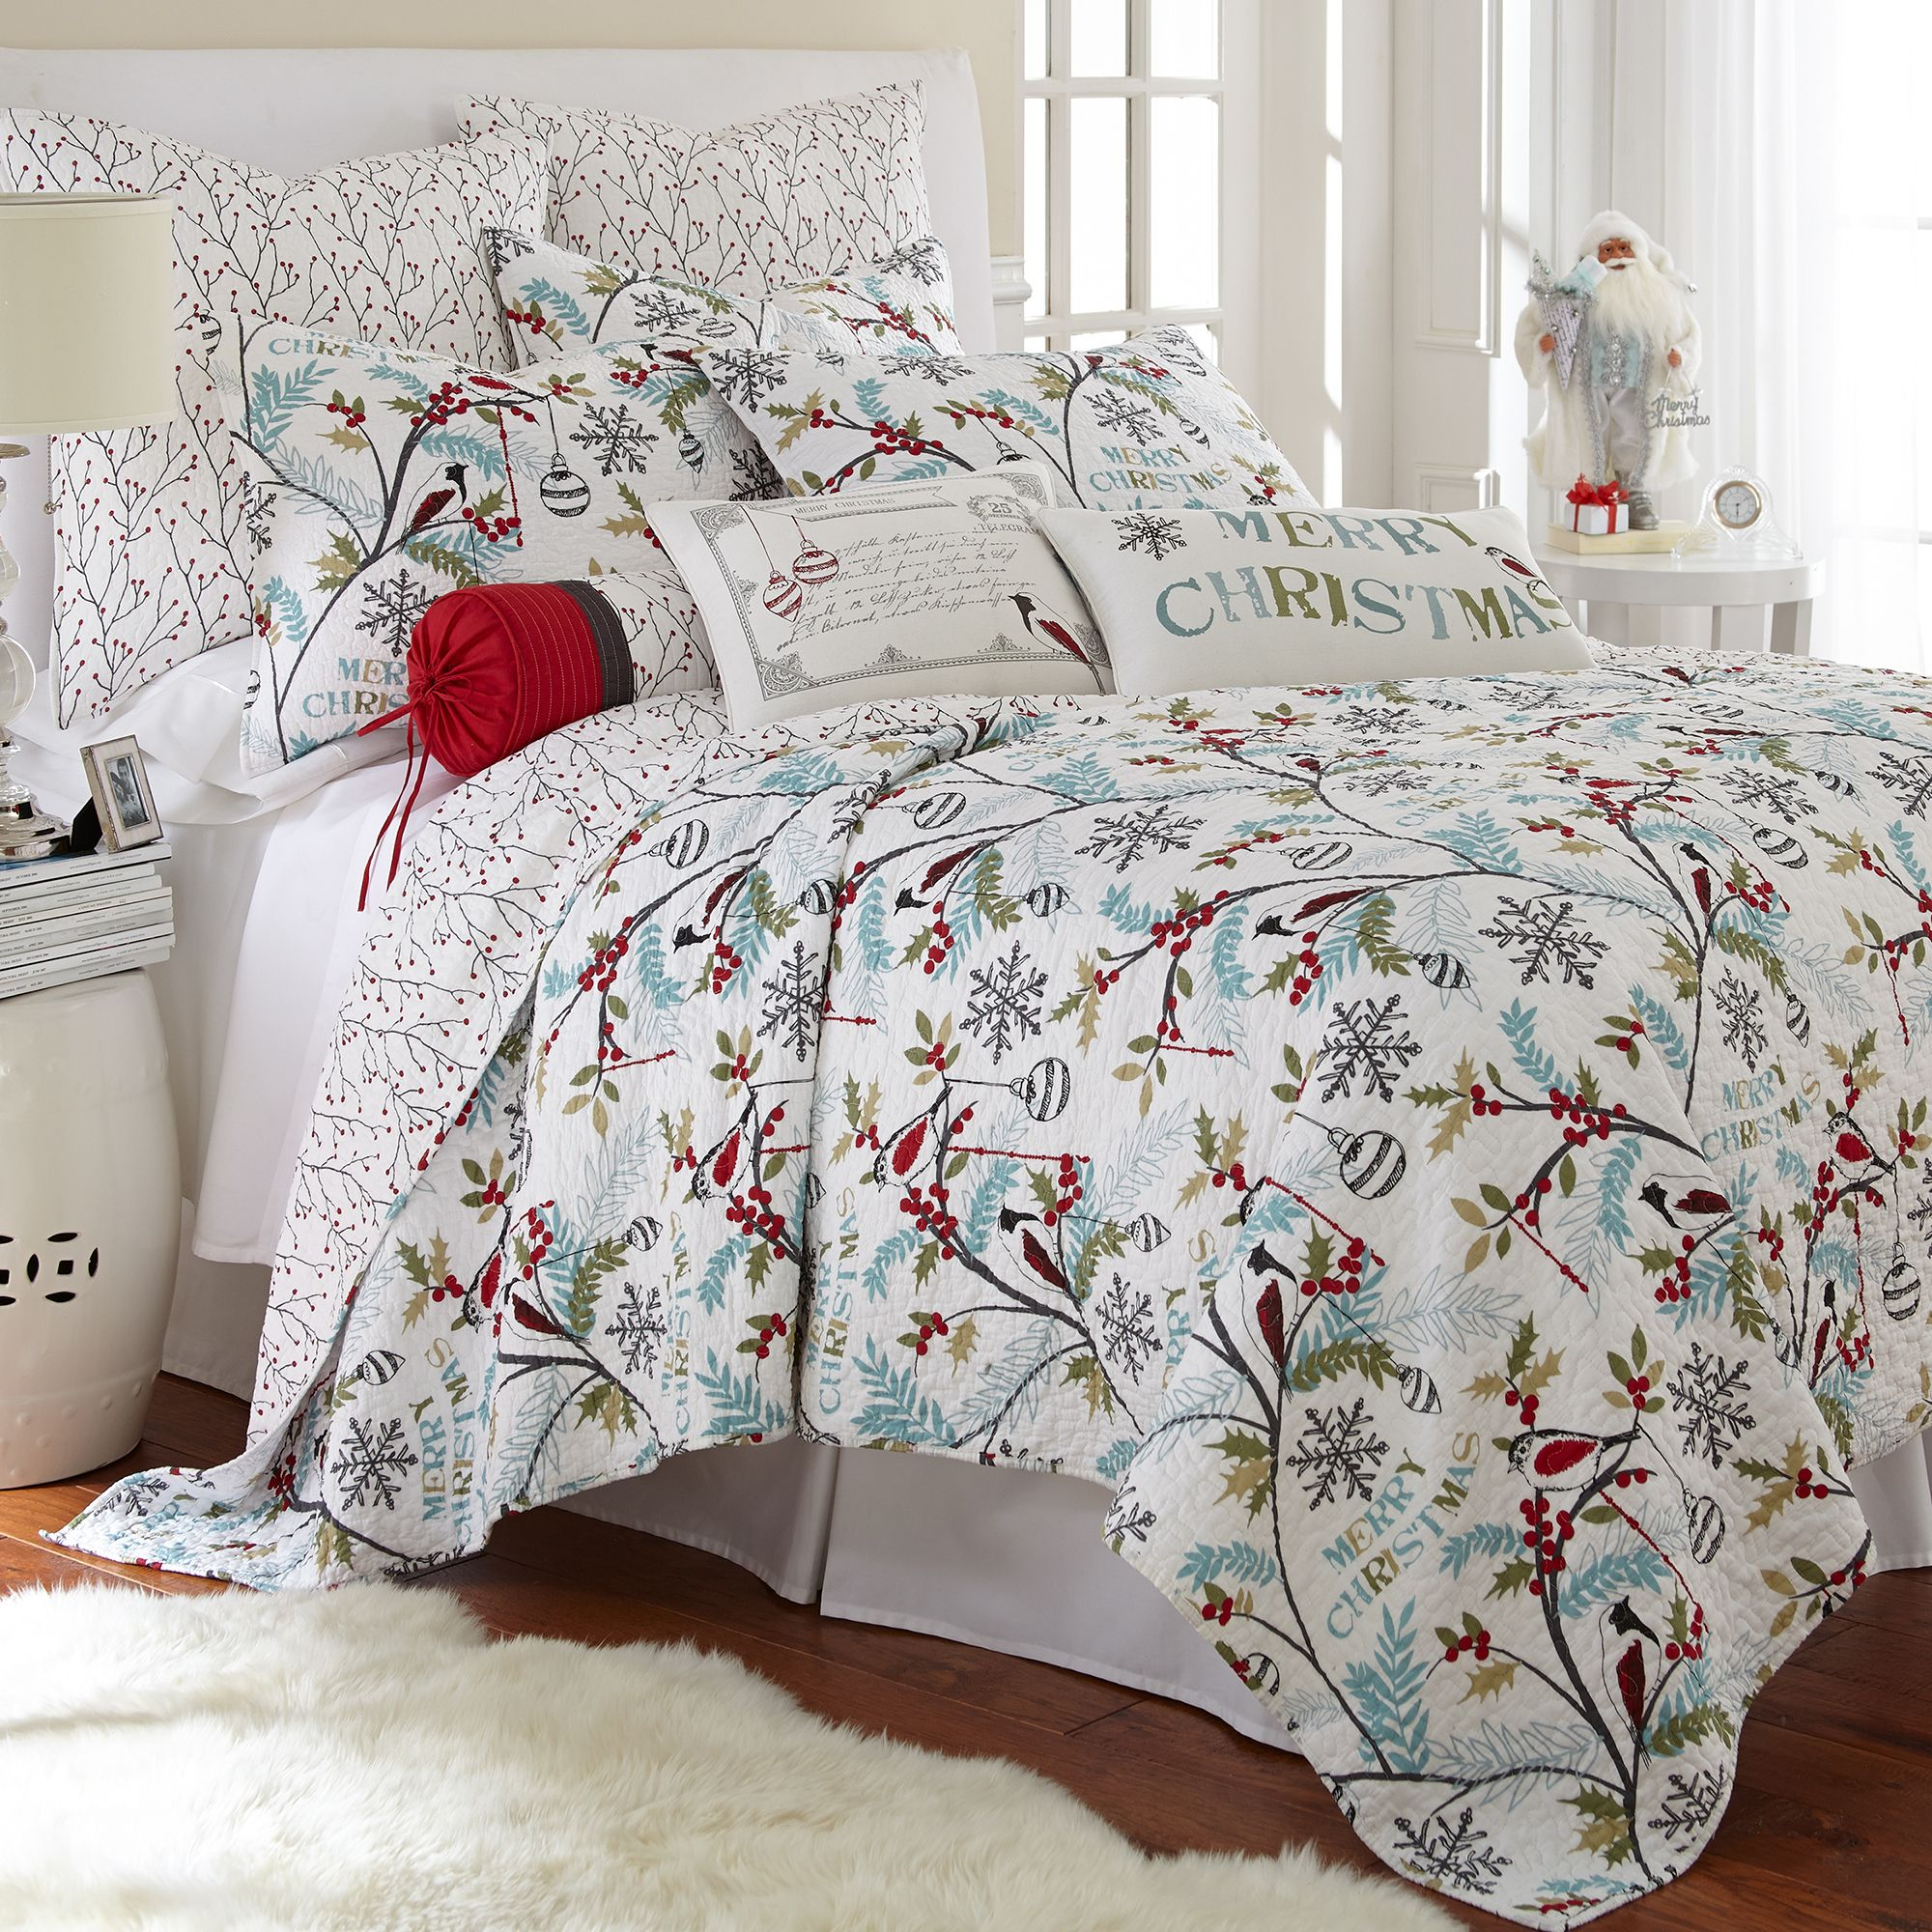 Levtex Home Holly Quilt Set King Two Pillow Shams Christmas Trees Teal Red Green White Size 106x92in And Sham 36x20